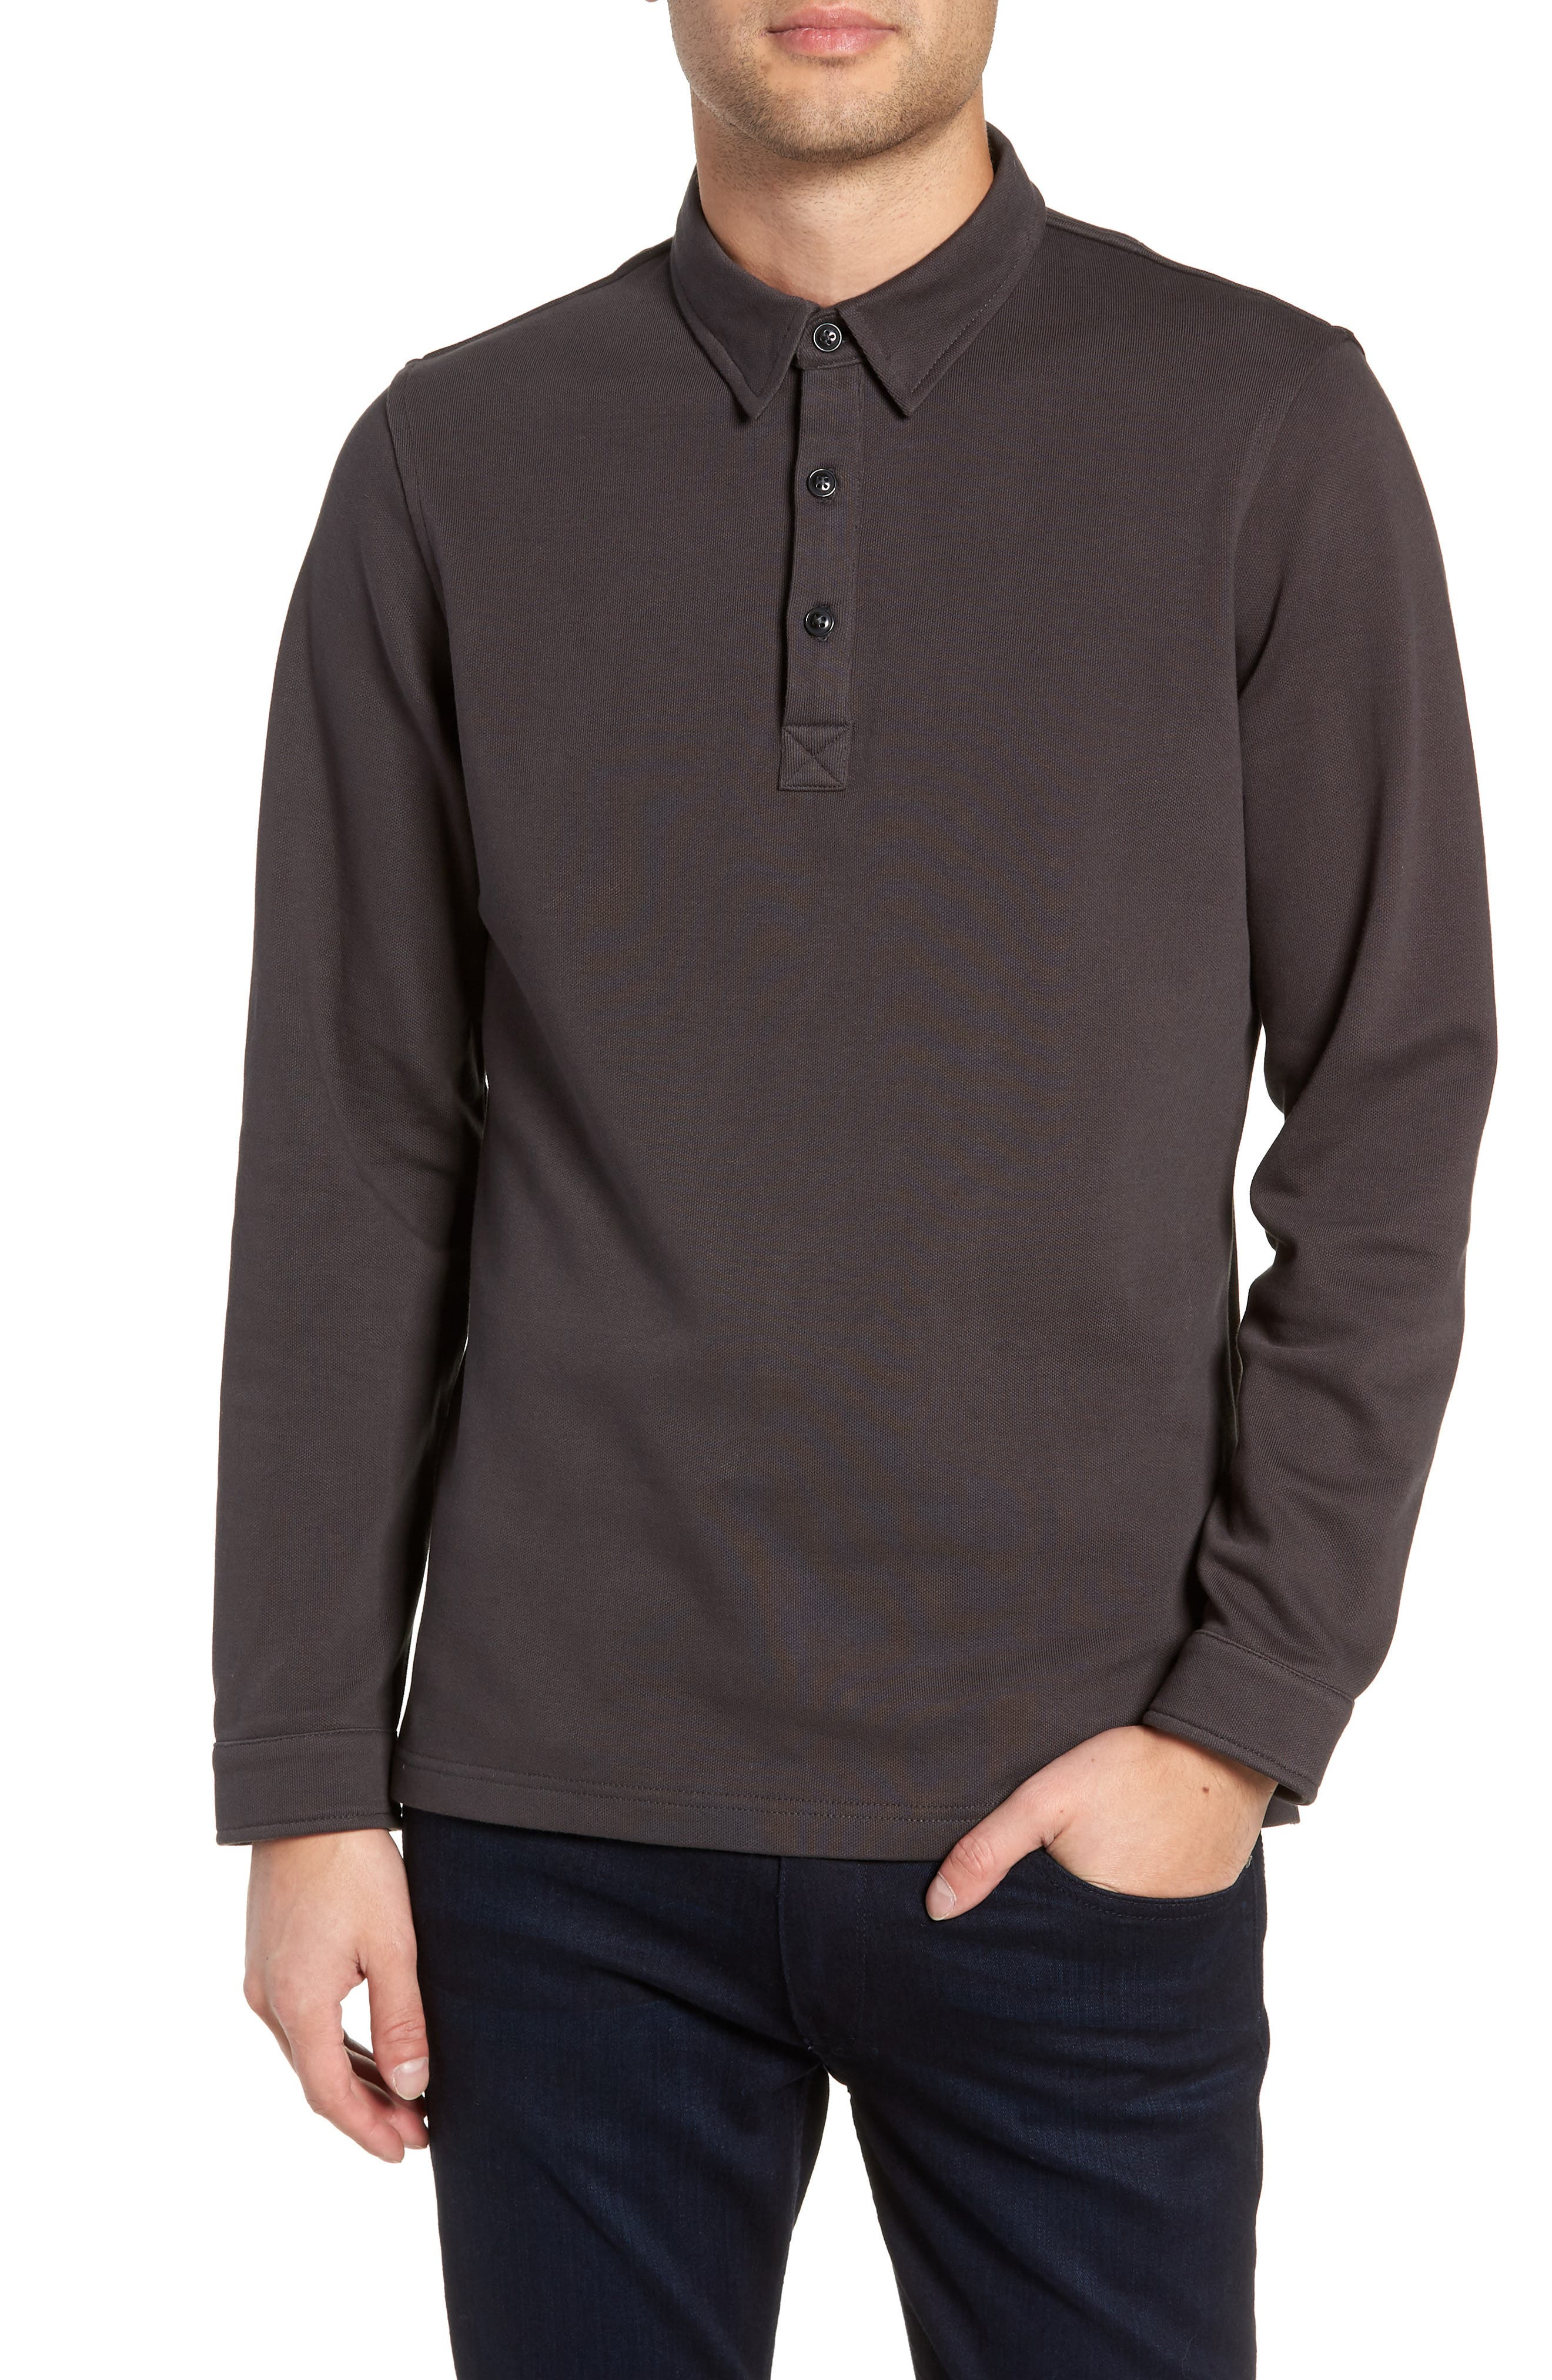 Texture Trim Fit Long Sleeve Polo,                             Main thumbnail 1, color,                             081